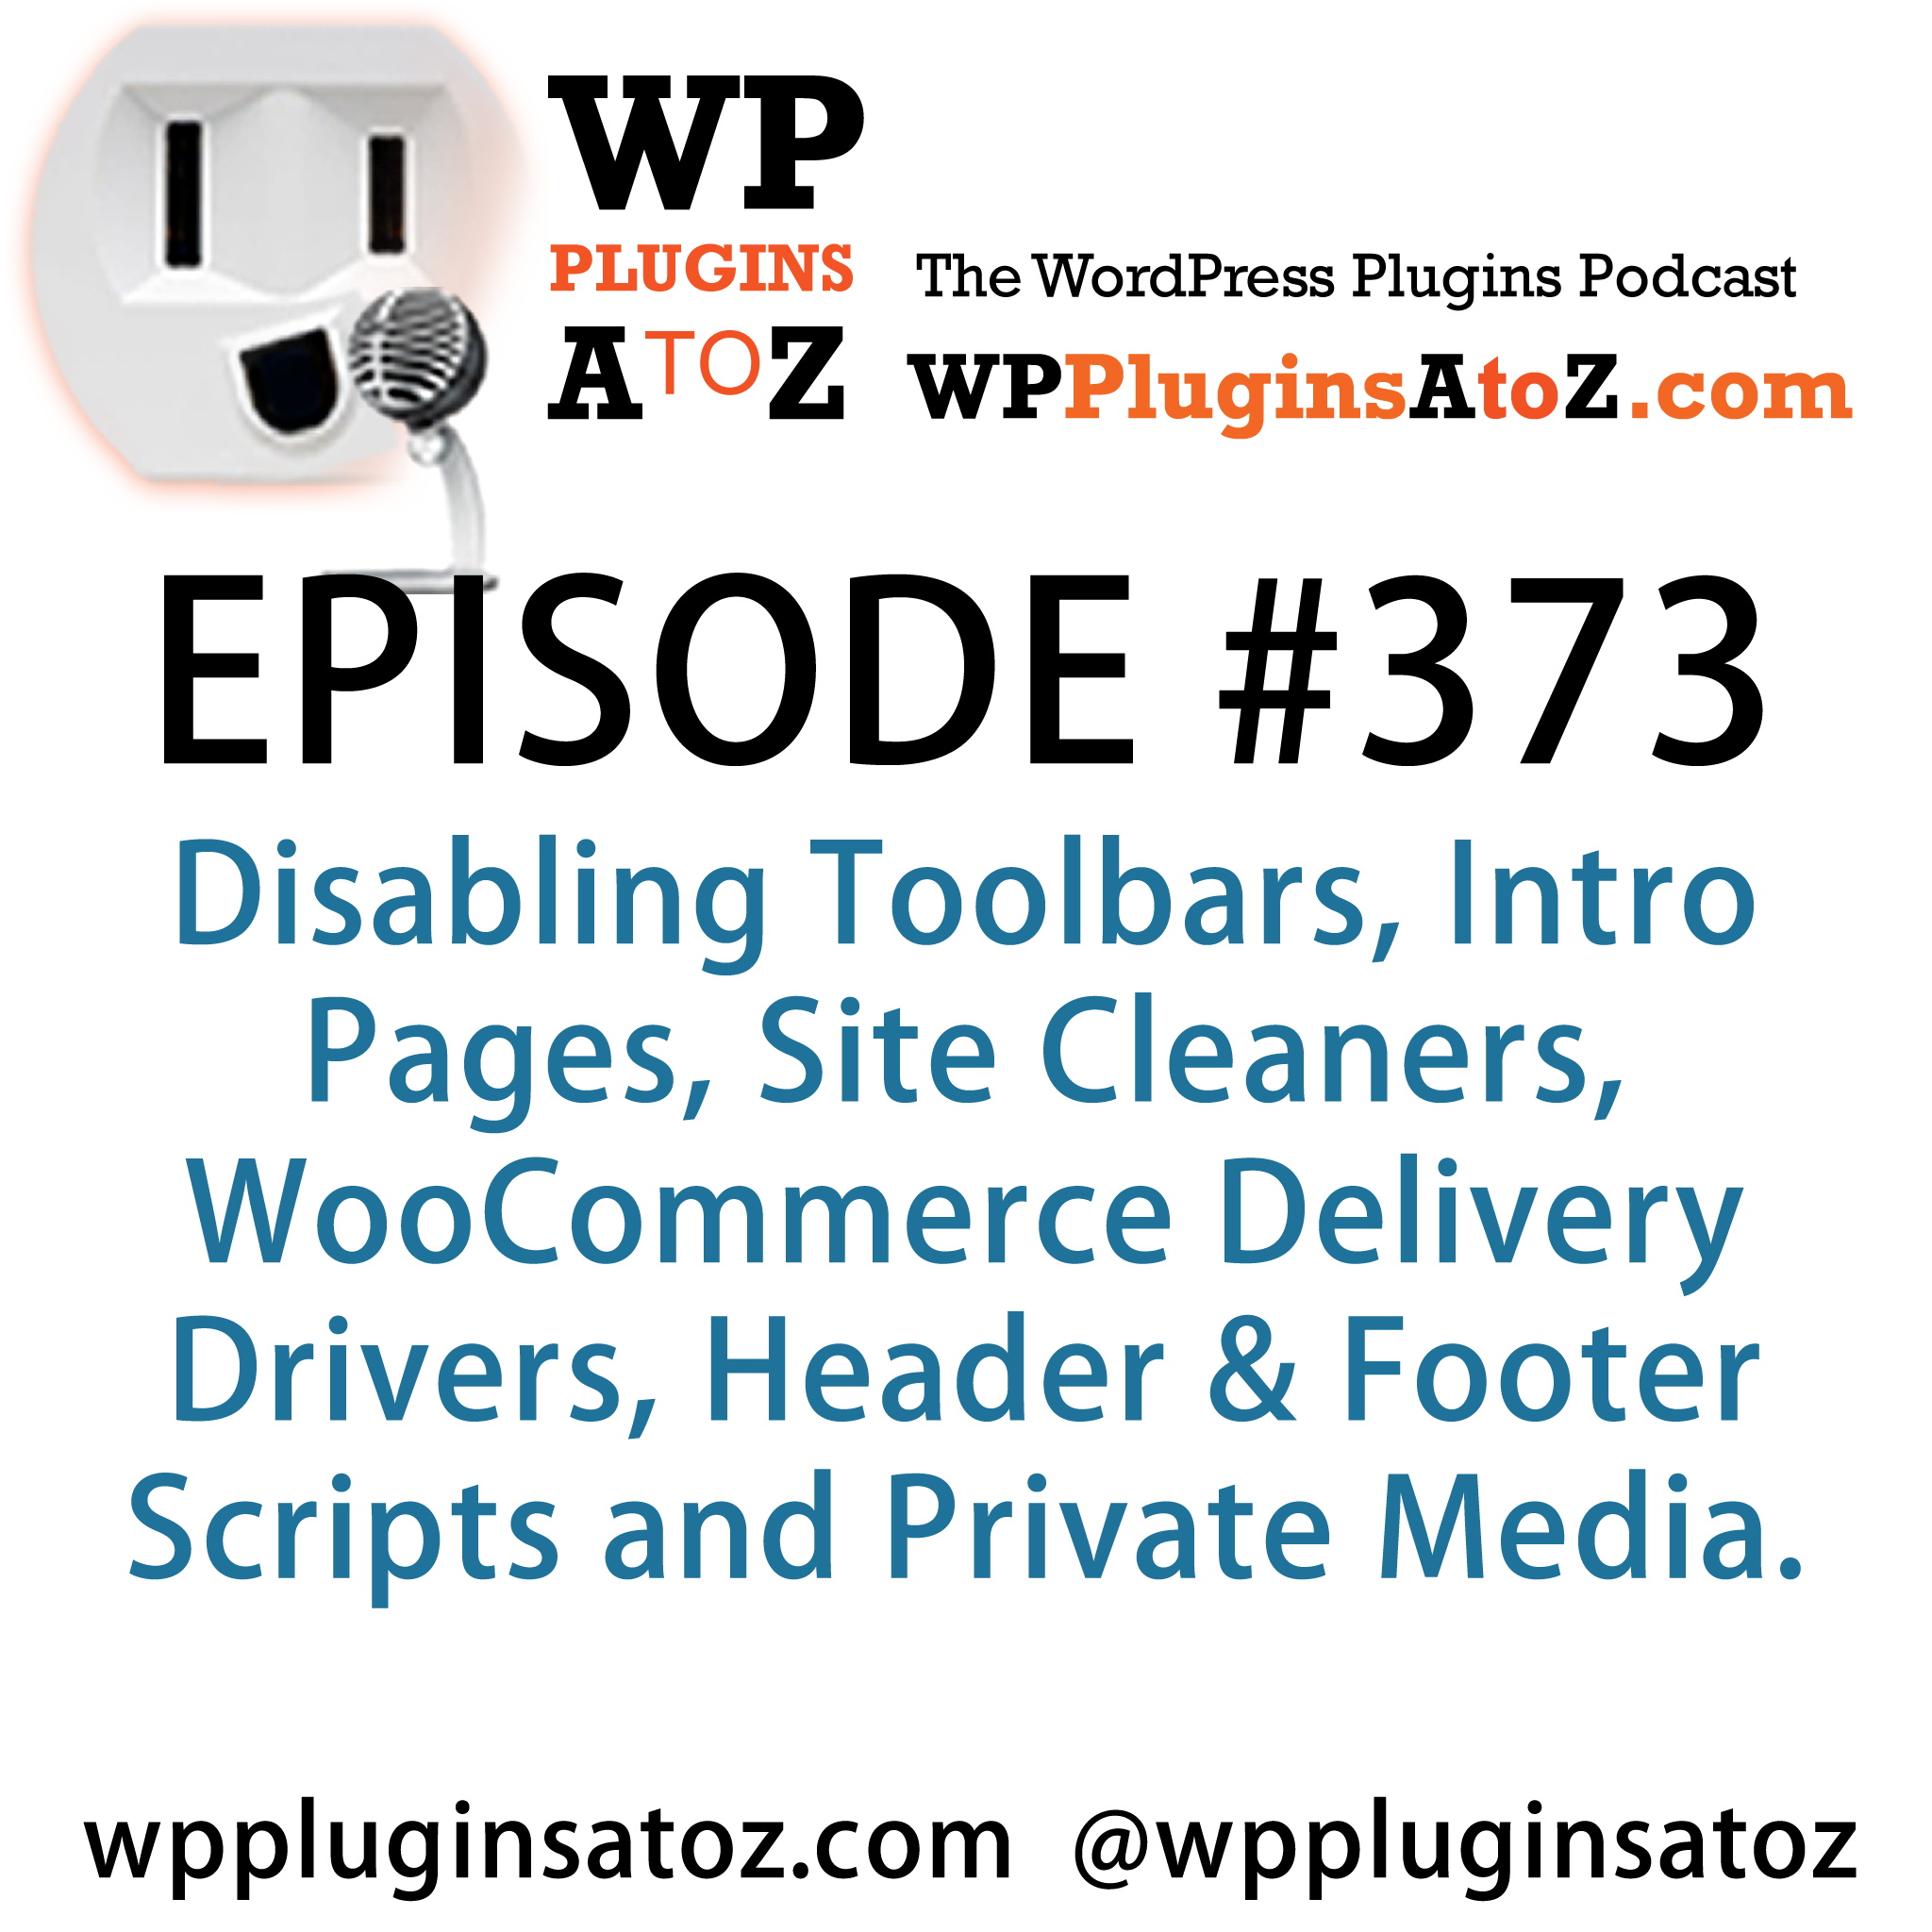 Pages 373 Wiring Library Ford Escape 20132016 Kit Harness Curt Mfg 56164 Wordpress Plugins A To Z Episode Disabling Toolbars Intro Site Cleaners